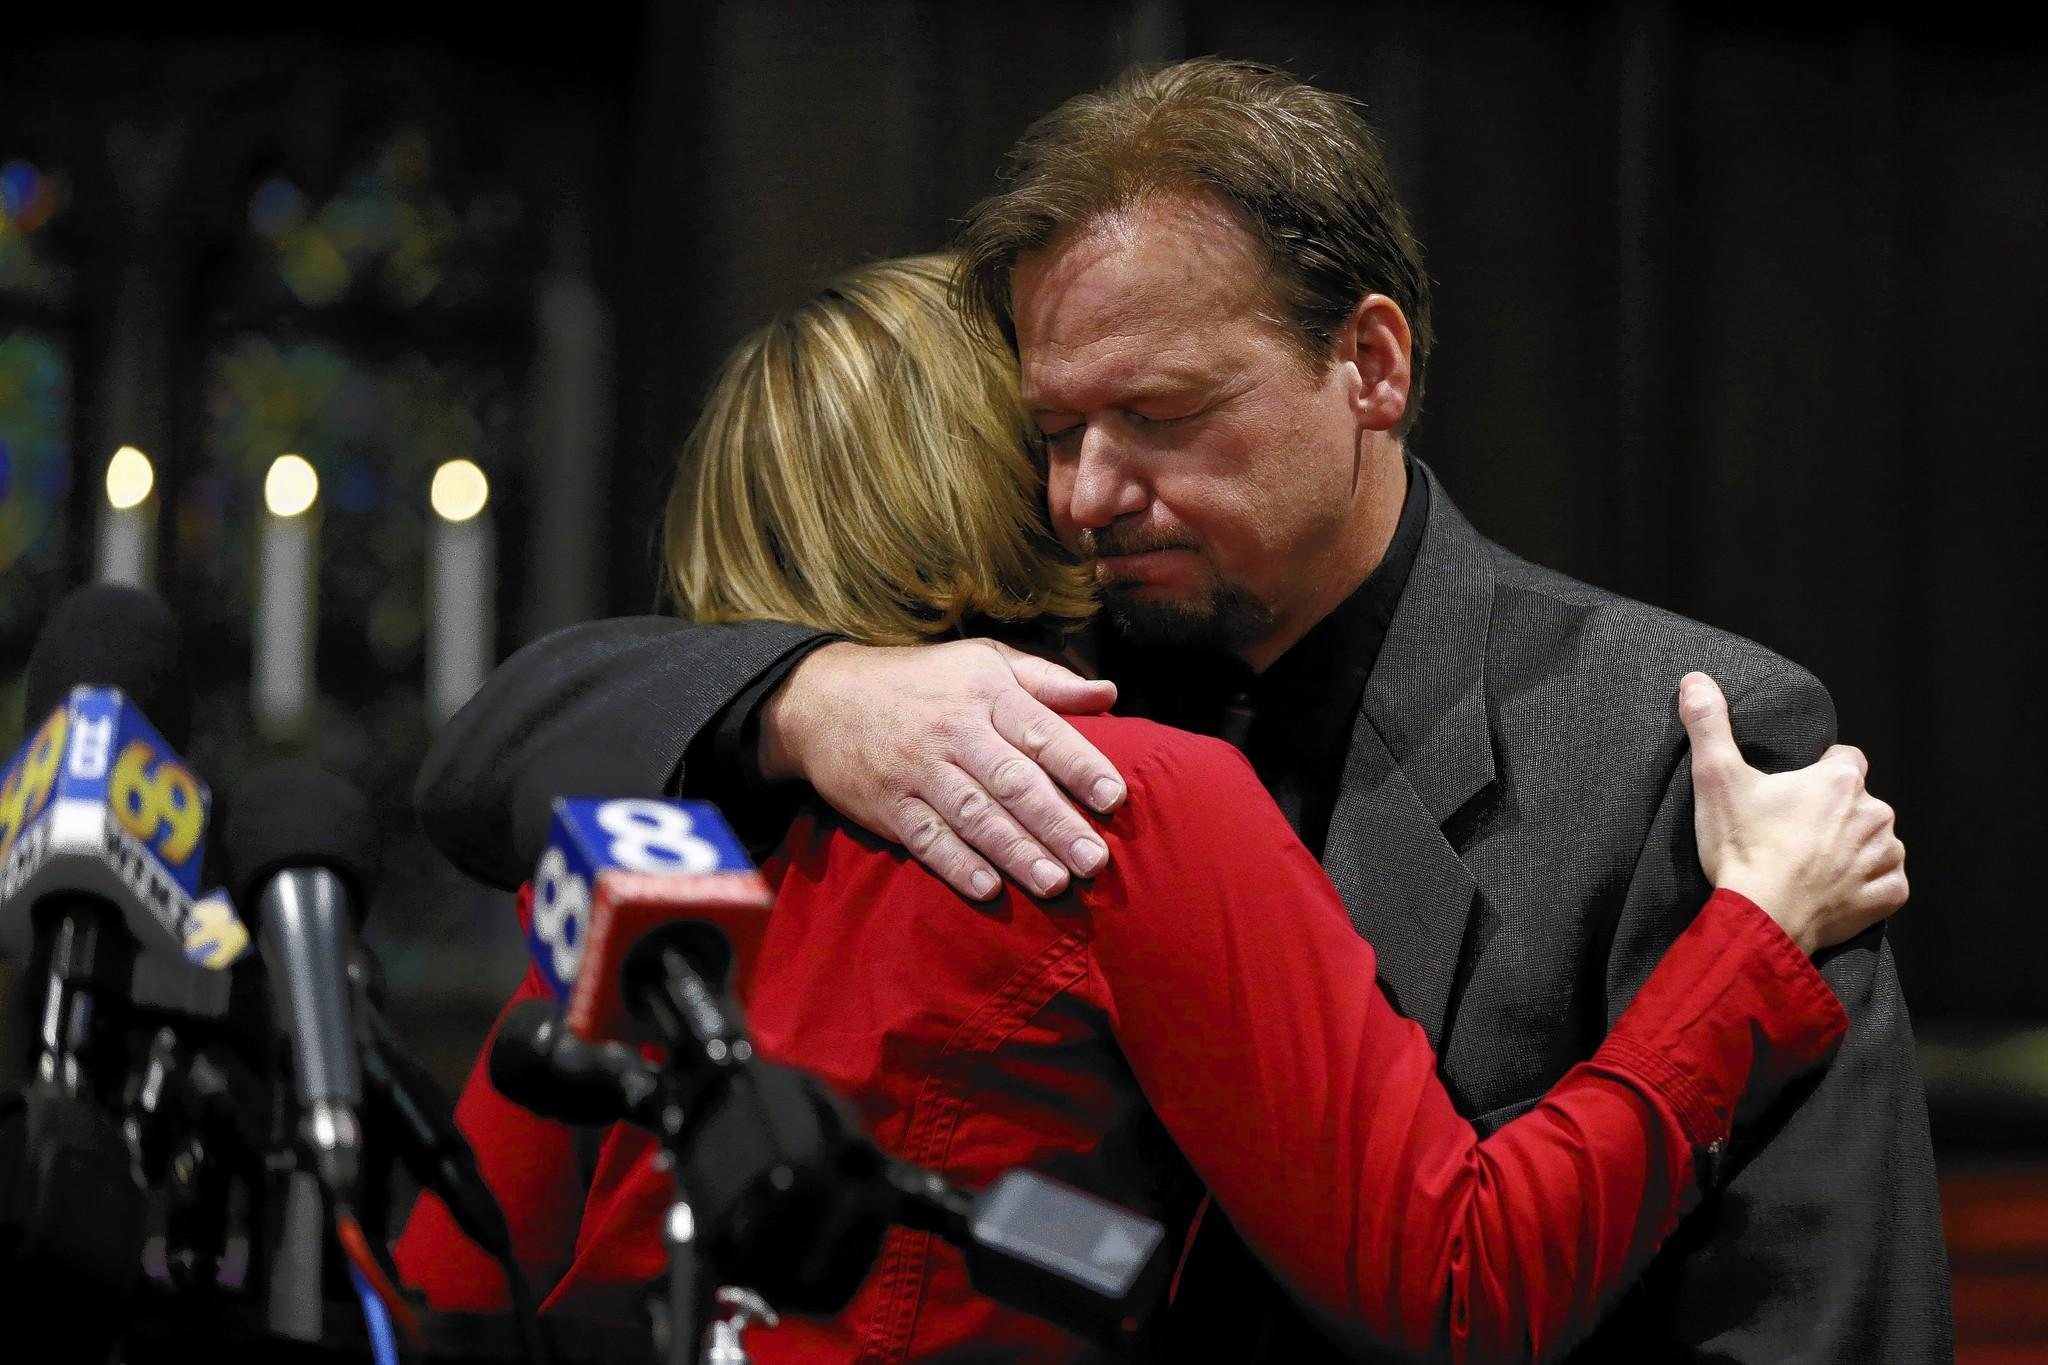 Former United Methodist pastor Frank Schaefer embraces the Rev. Lorelei Toombs during a news conference after the church announced its decision to defrock Schaefer for performing a same-sex marriage.